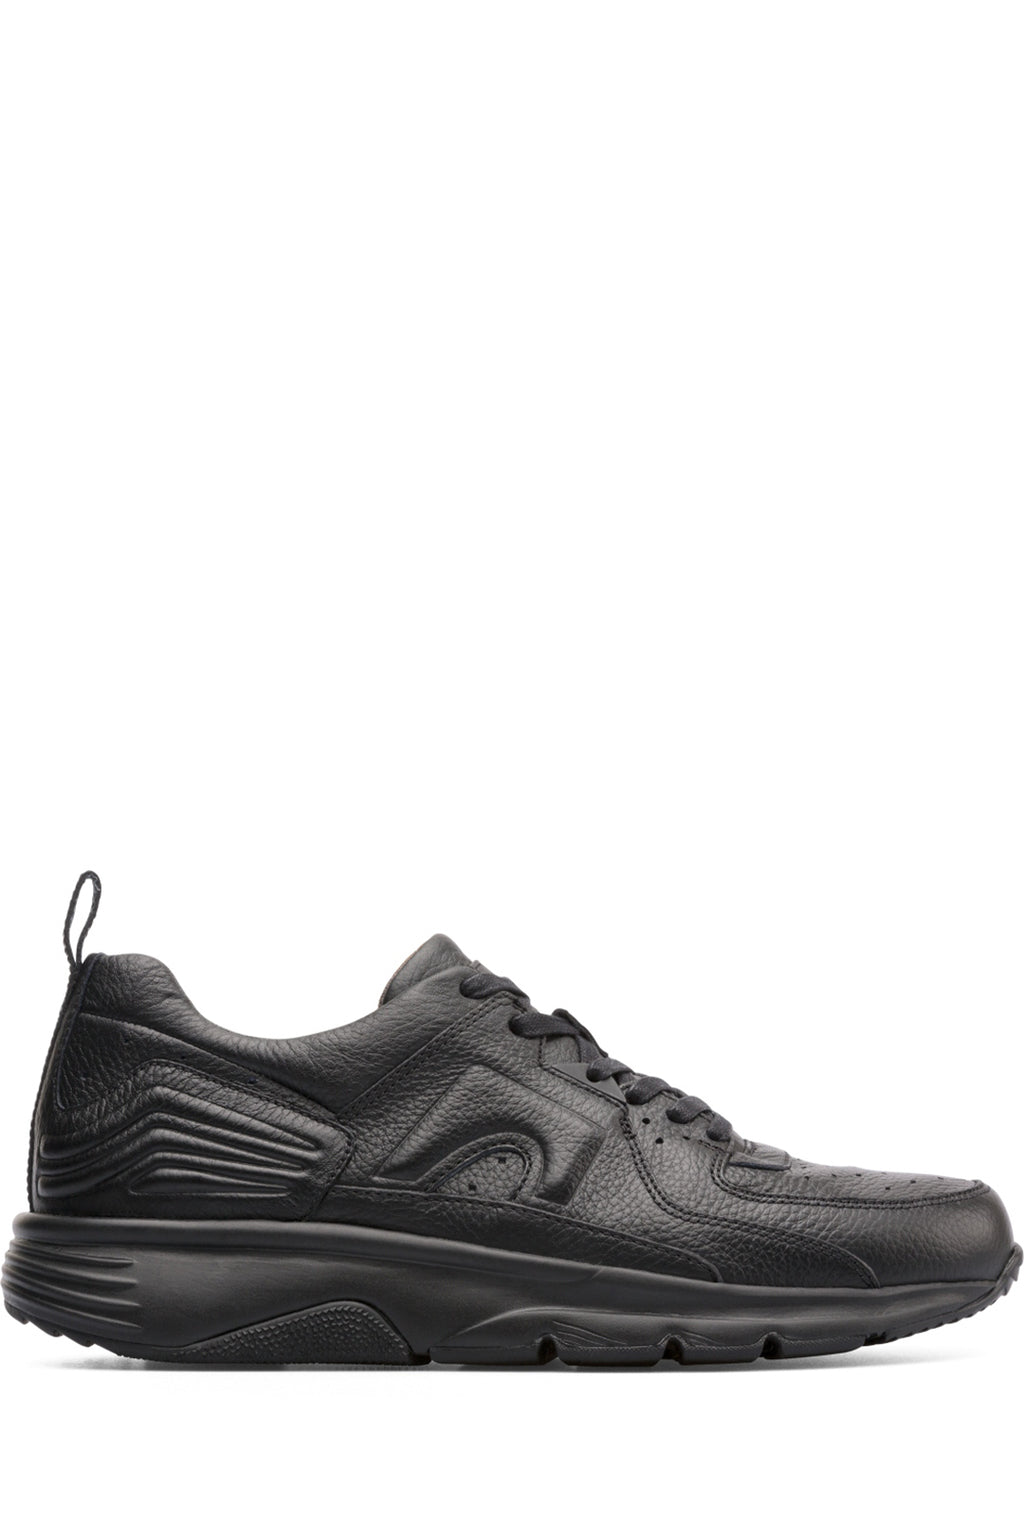 Camper Drift Sneaker, Black - Mens